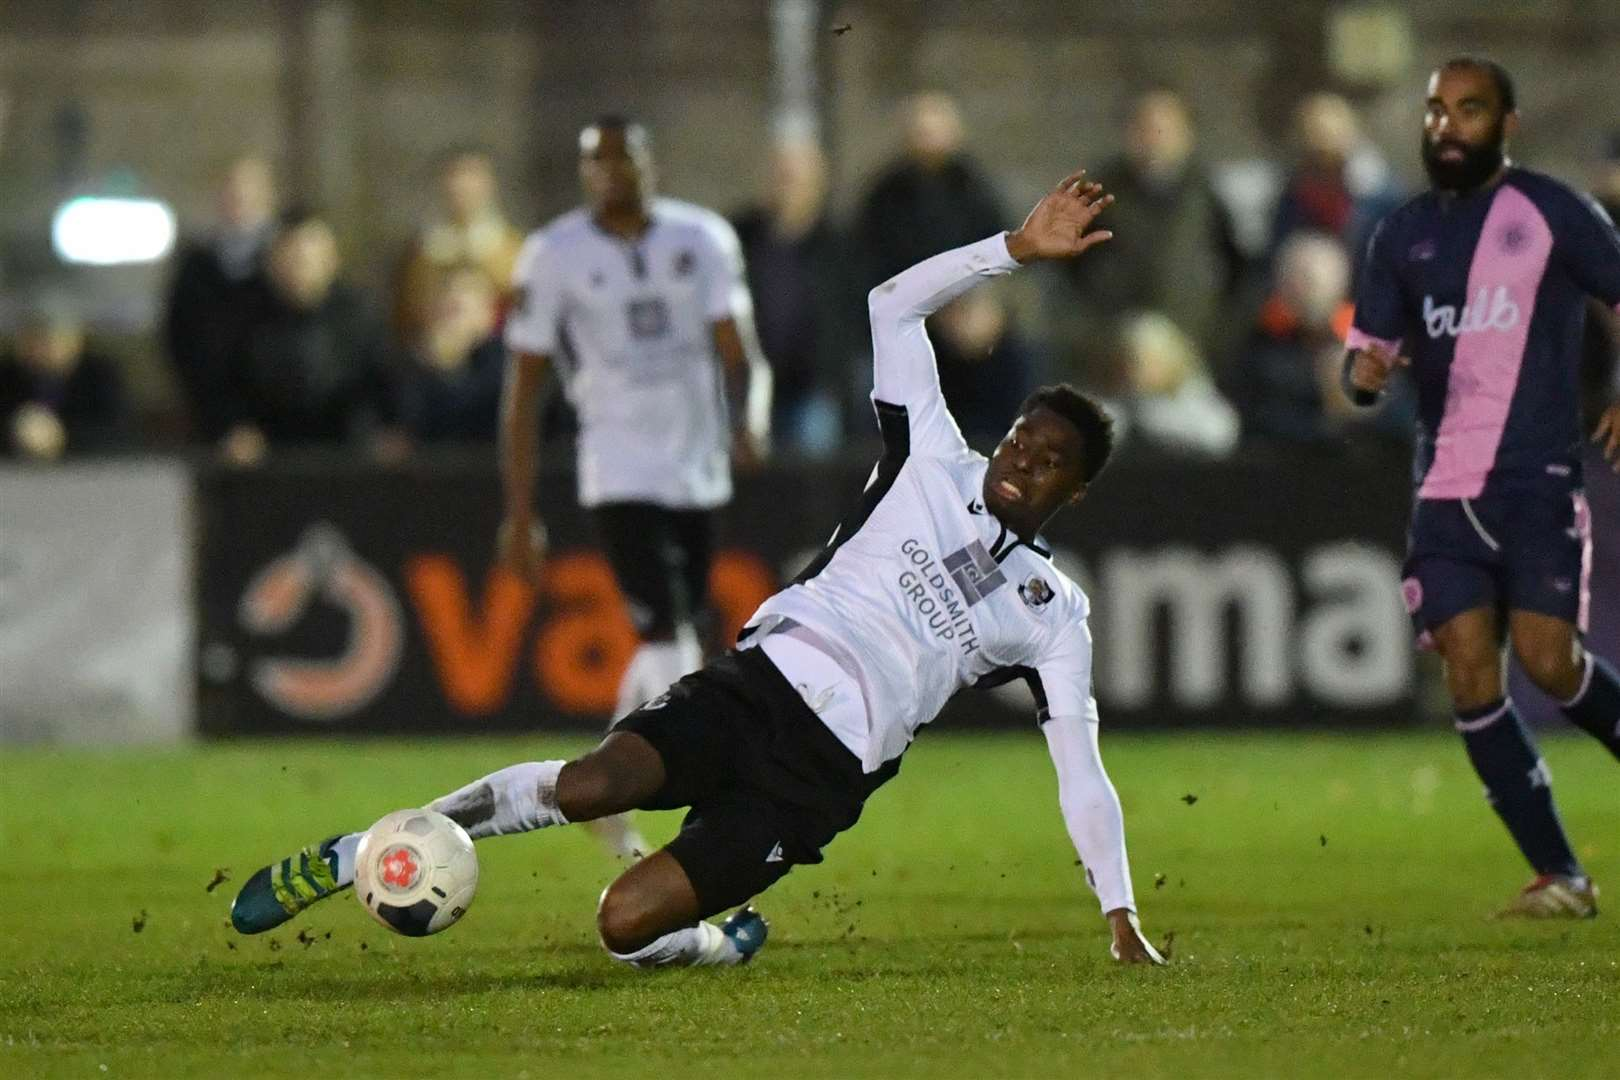 Jordan Wynter slides in on his return to the Dartford side. Picture: Keith Gillard